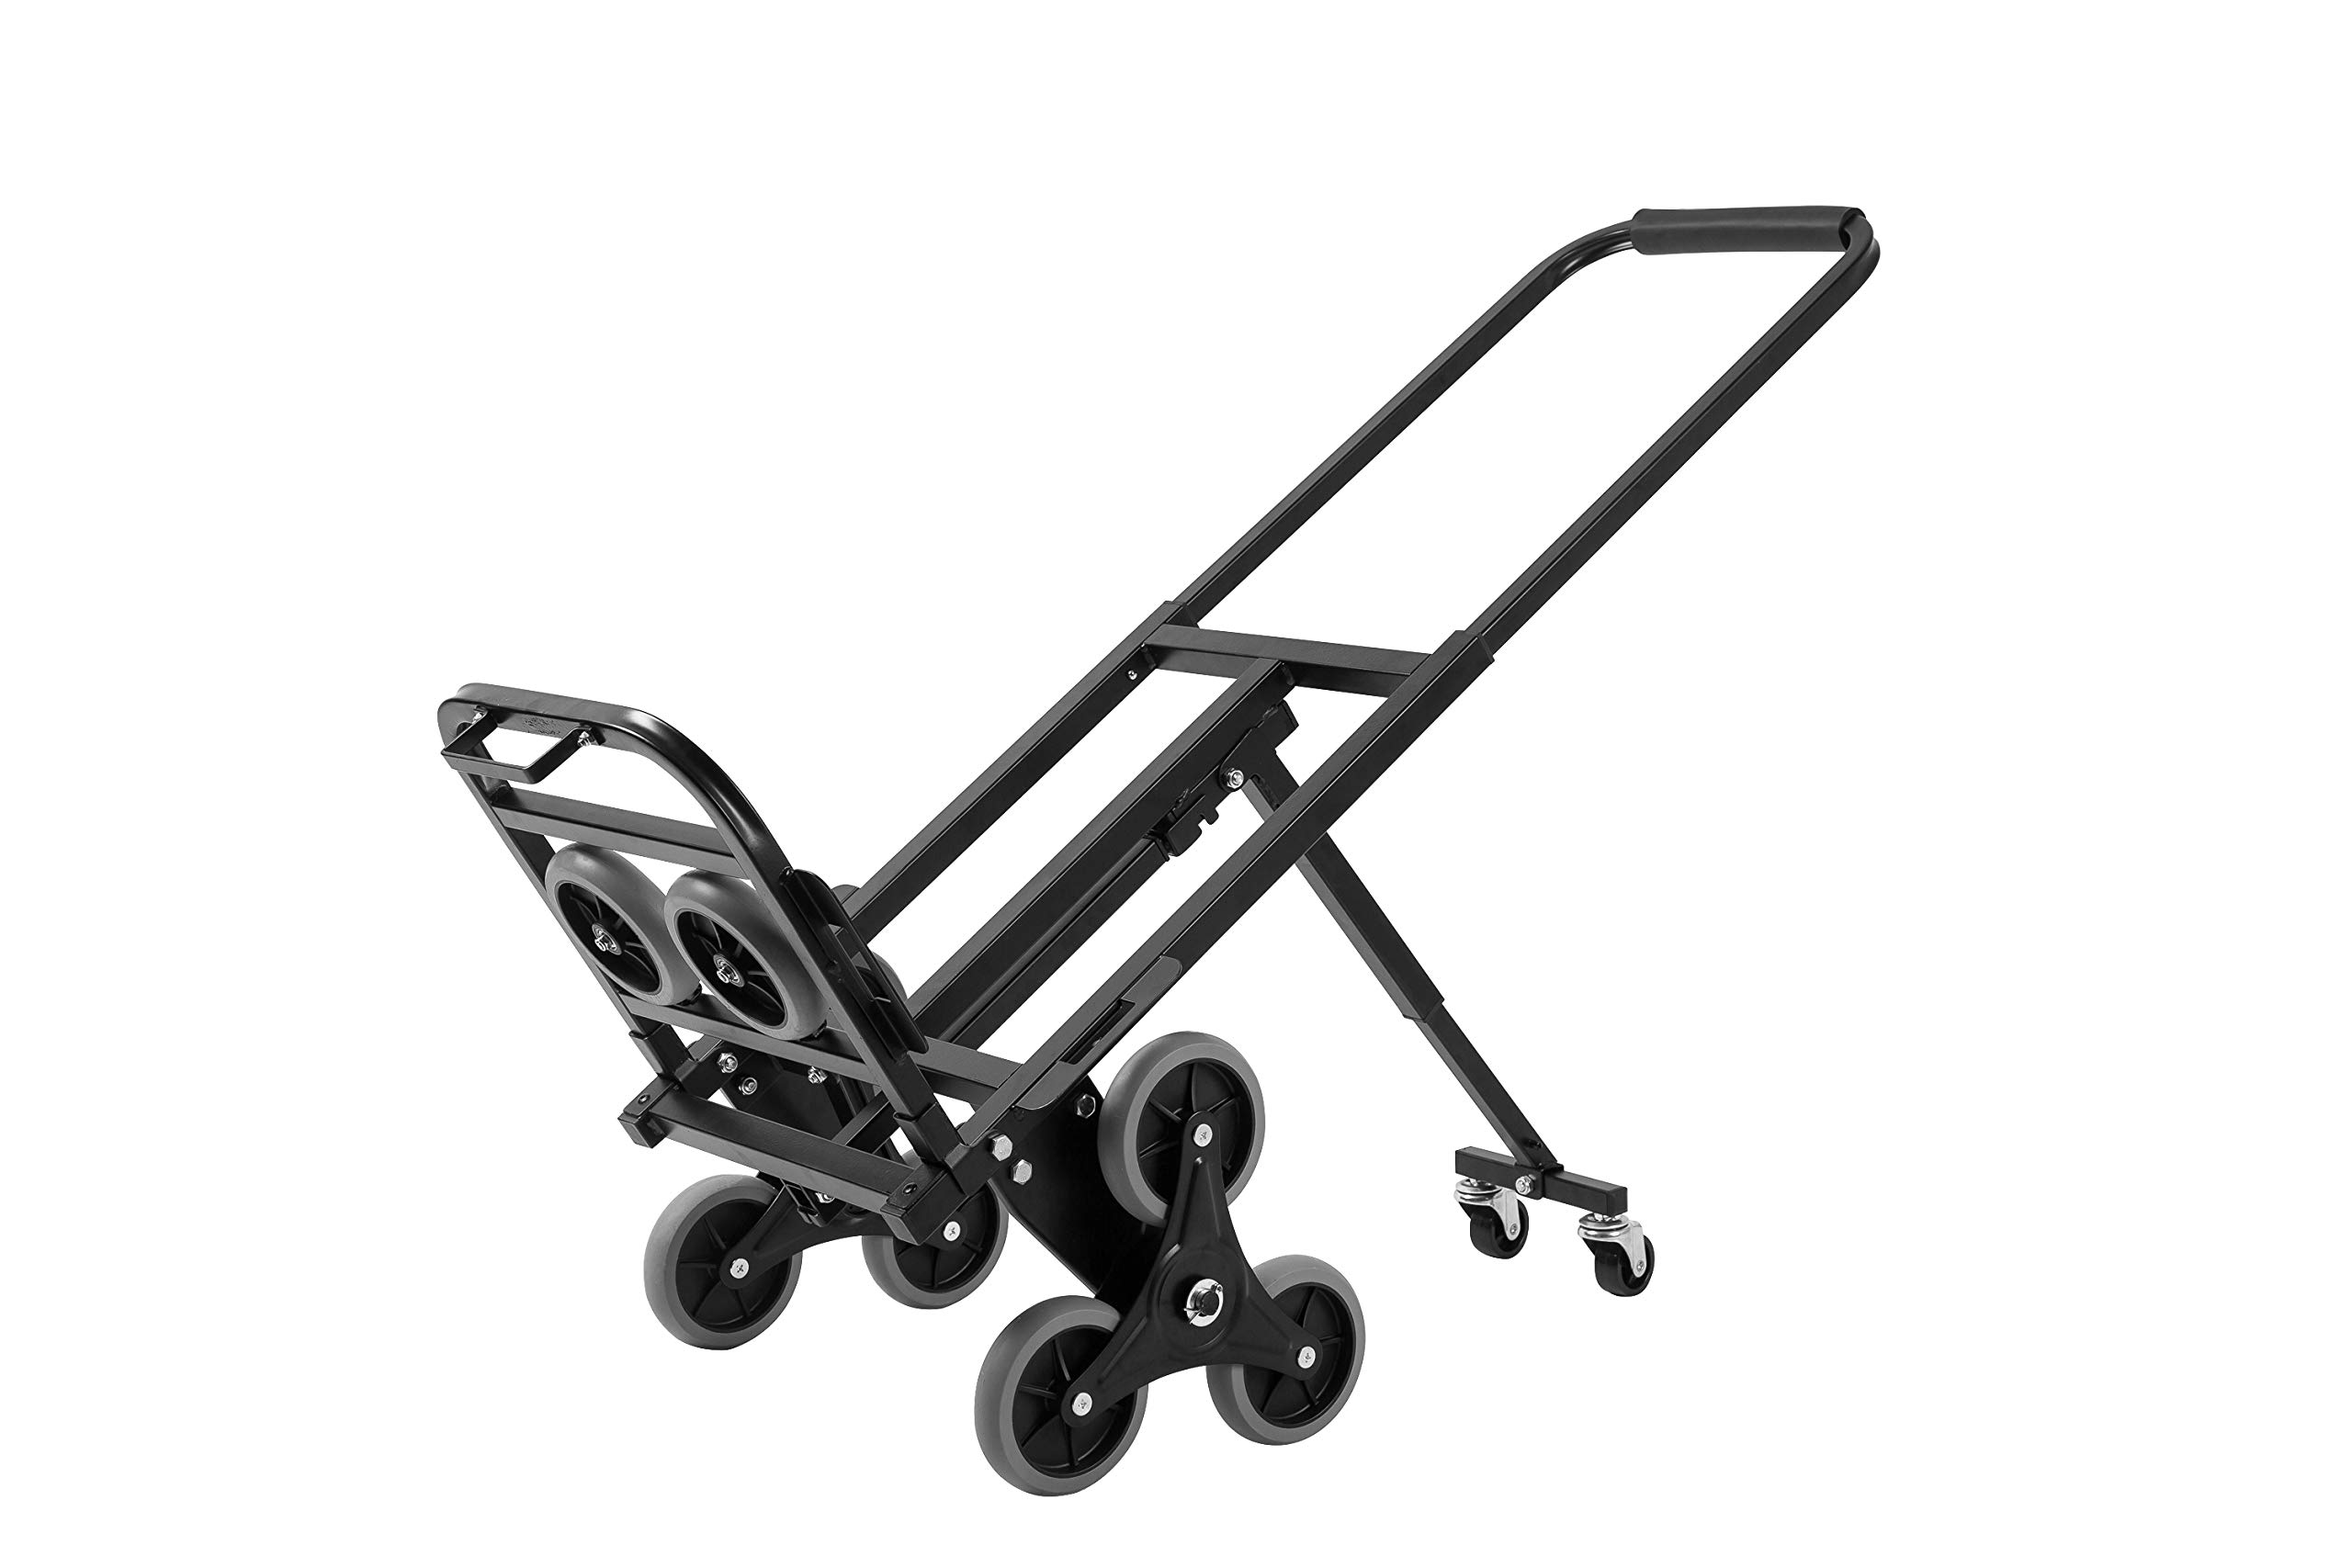 Z-bond Stair Climbing Cart 45 Inches Portable Hand Truck 2x Three-wheel Hand Truck Stair Climber 330LB Capacity Folding Stair Hand Truck Heavy Duty with 2 Backup Wheels